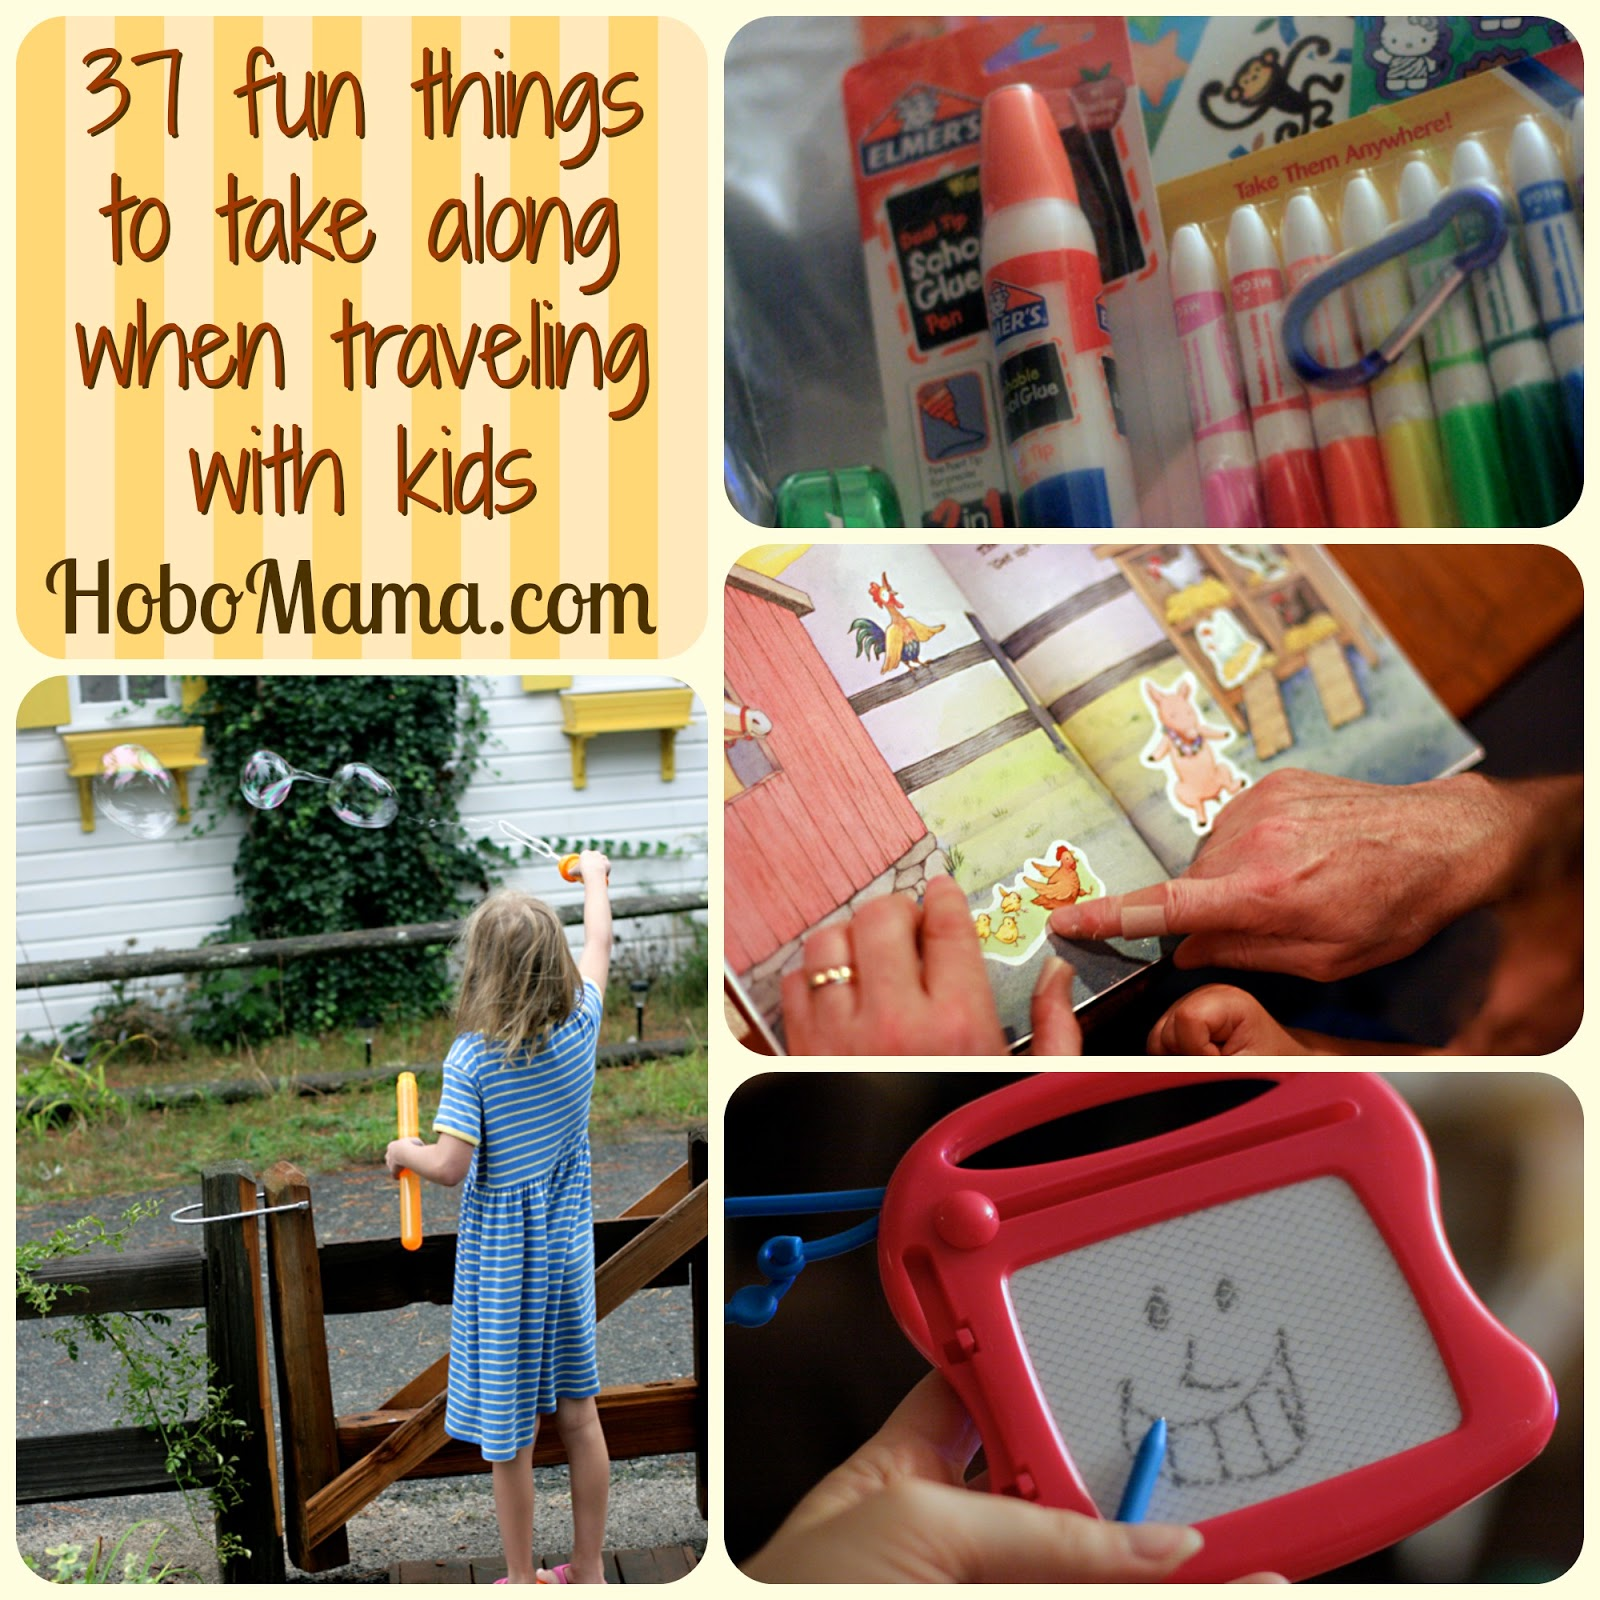 Hobo Mama = 37 fun things to take along when traveling with kids